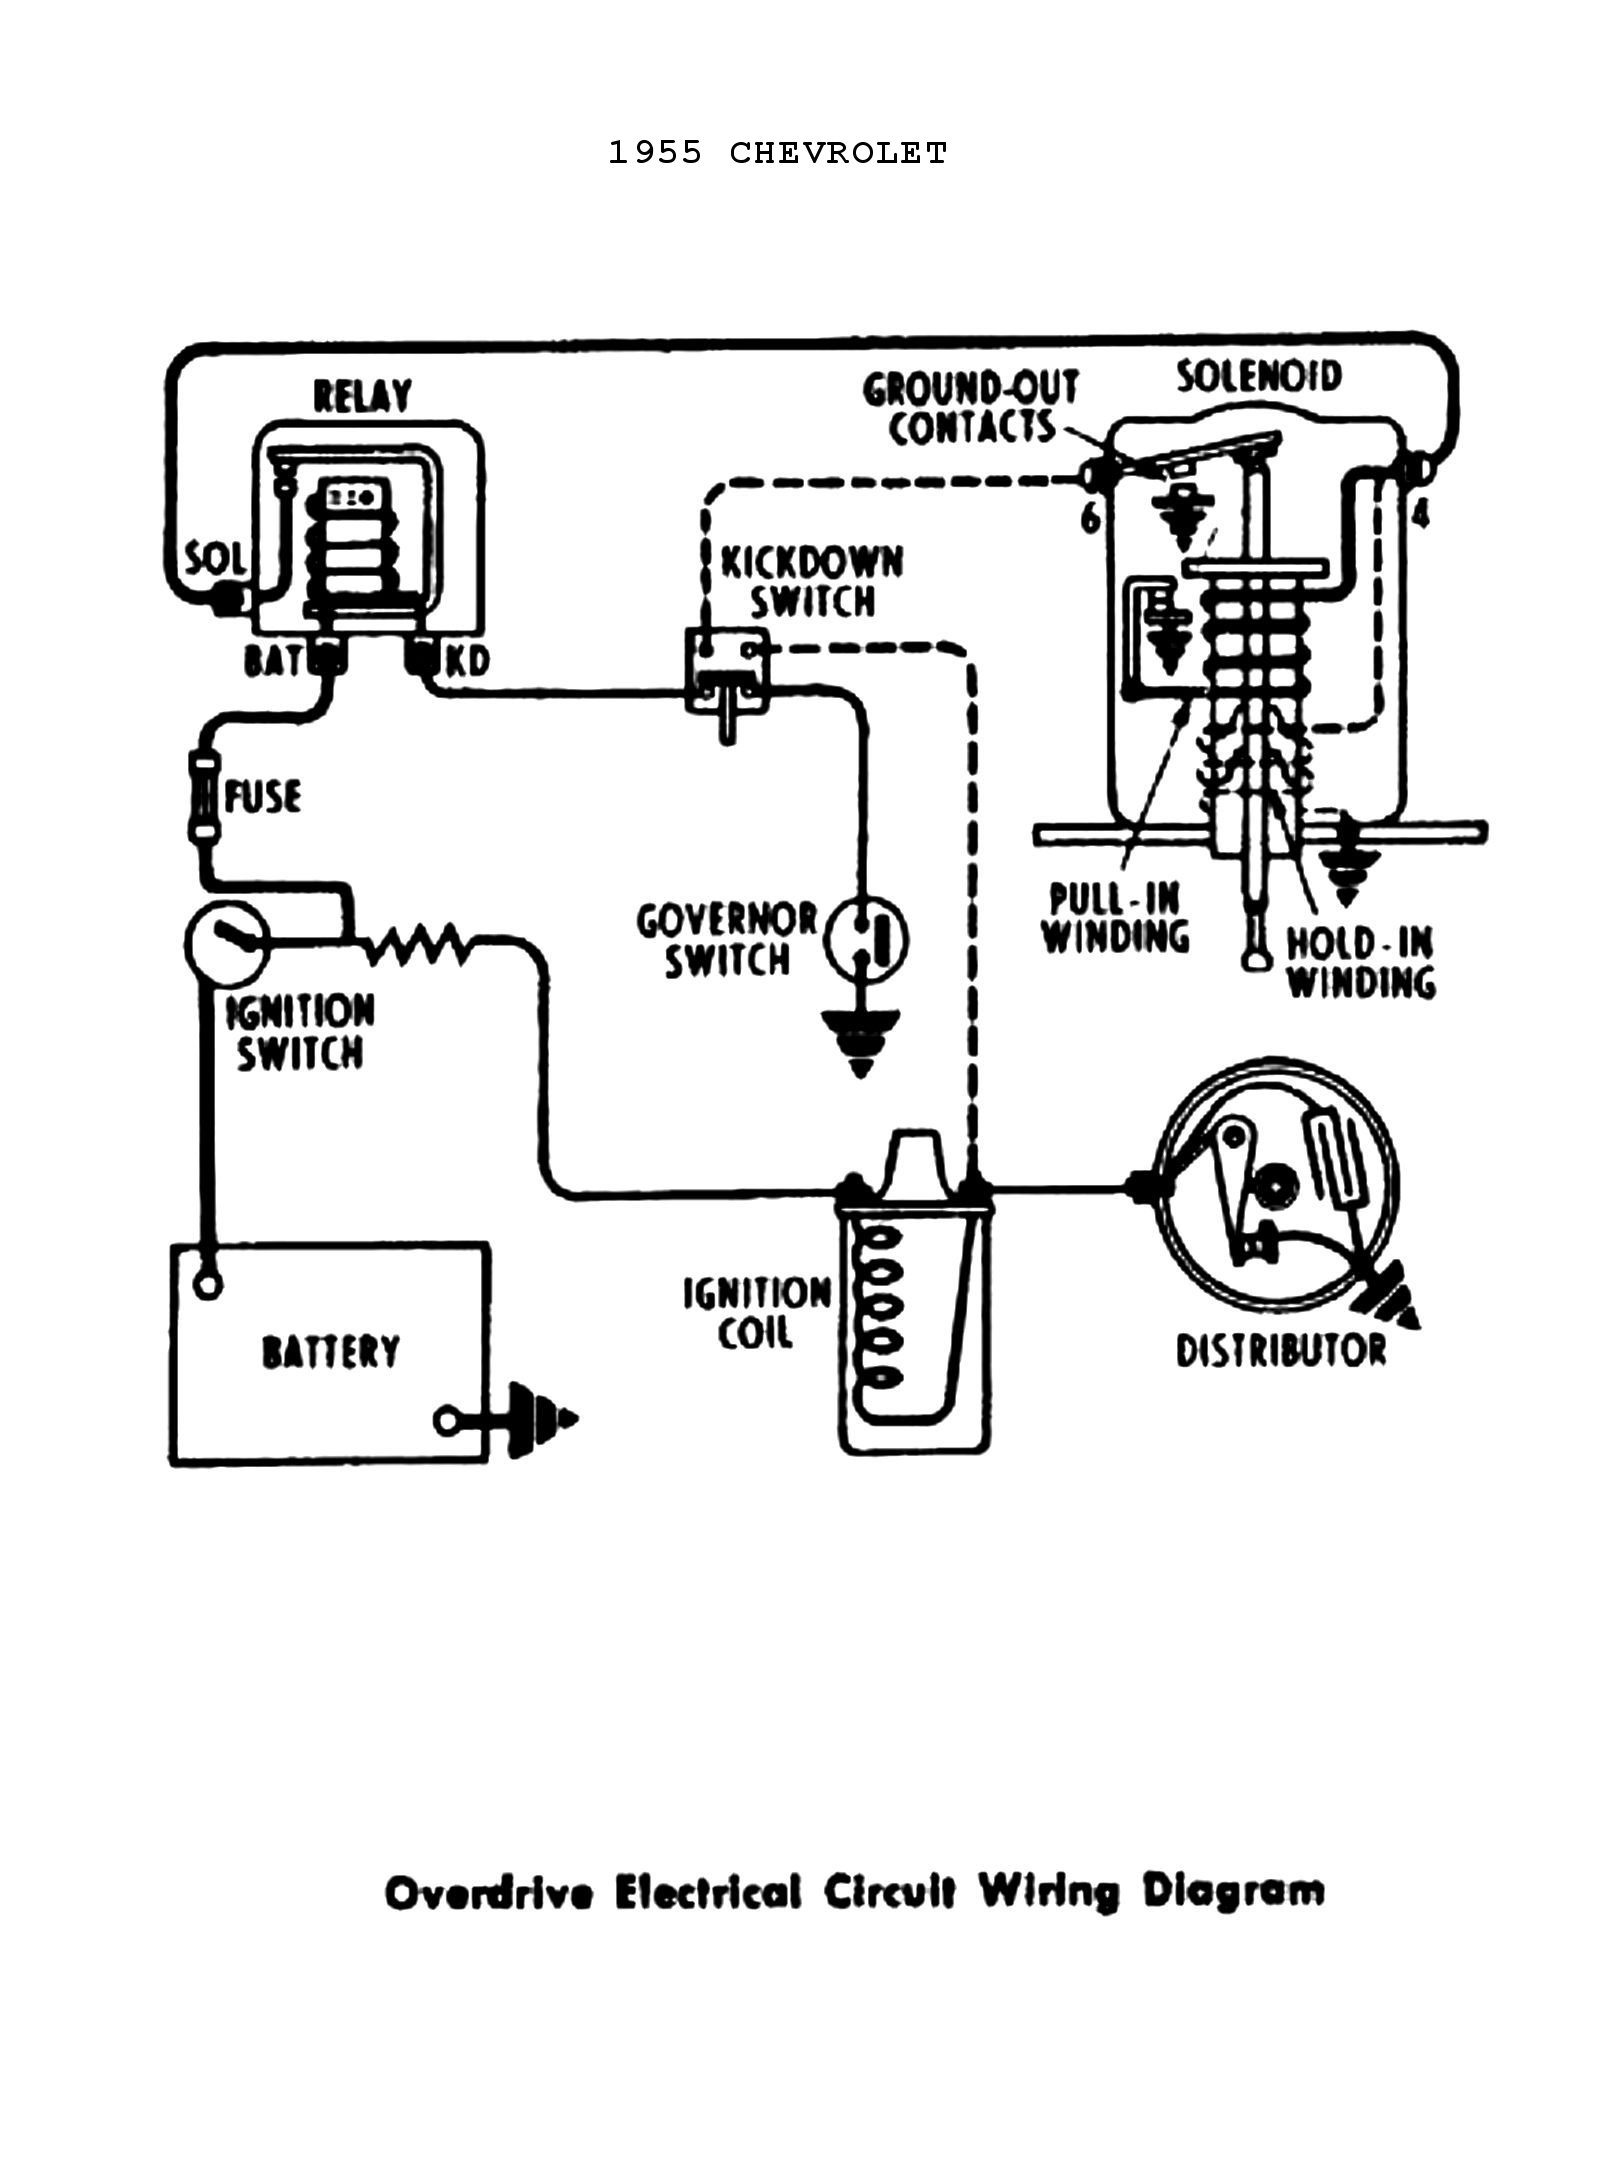 85 Gm Coil Wiring Diagram Library 1964 Ford Galaxie Ignition 1955 Power Windows Seats Overdrive Circuit